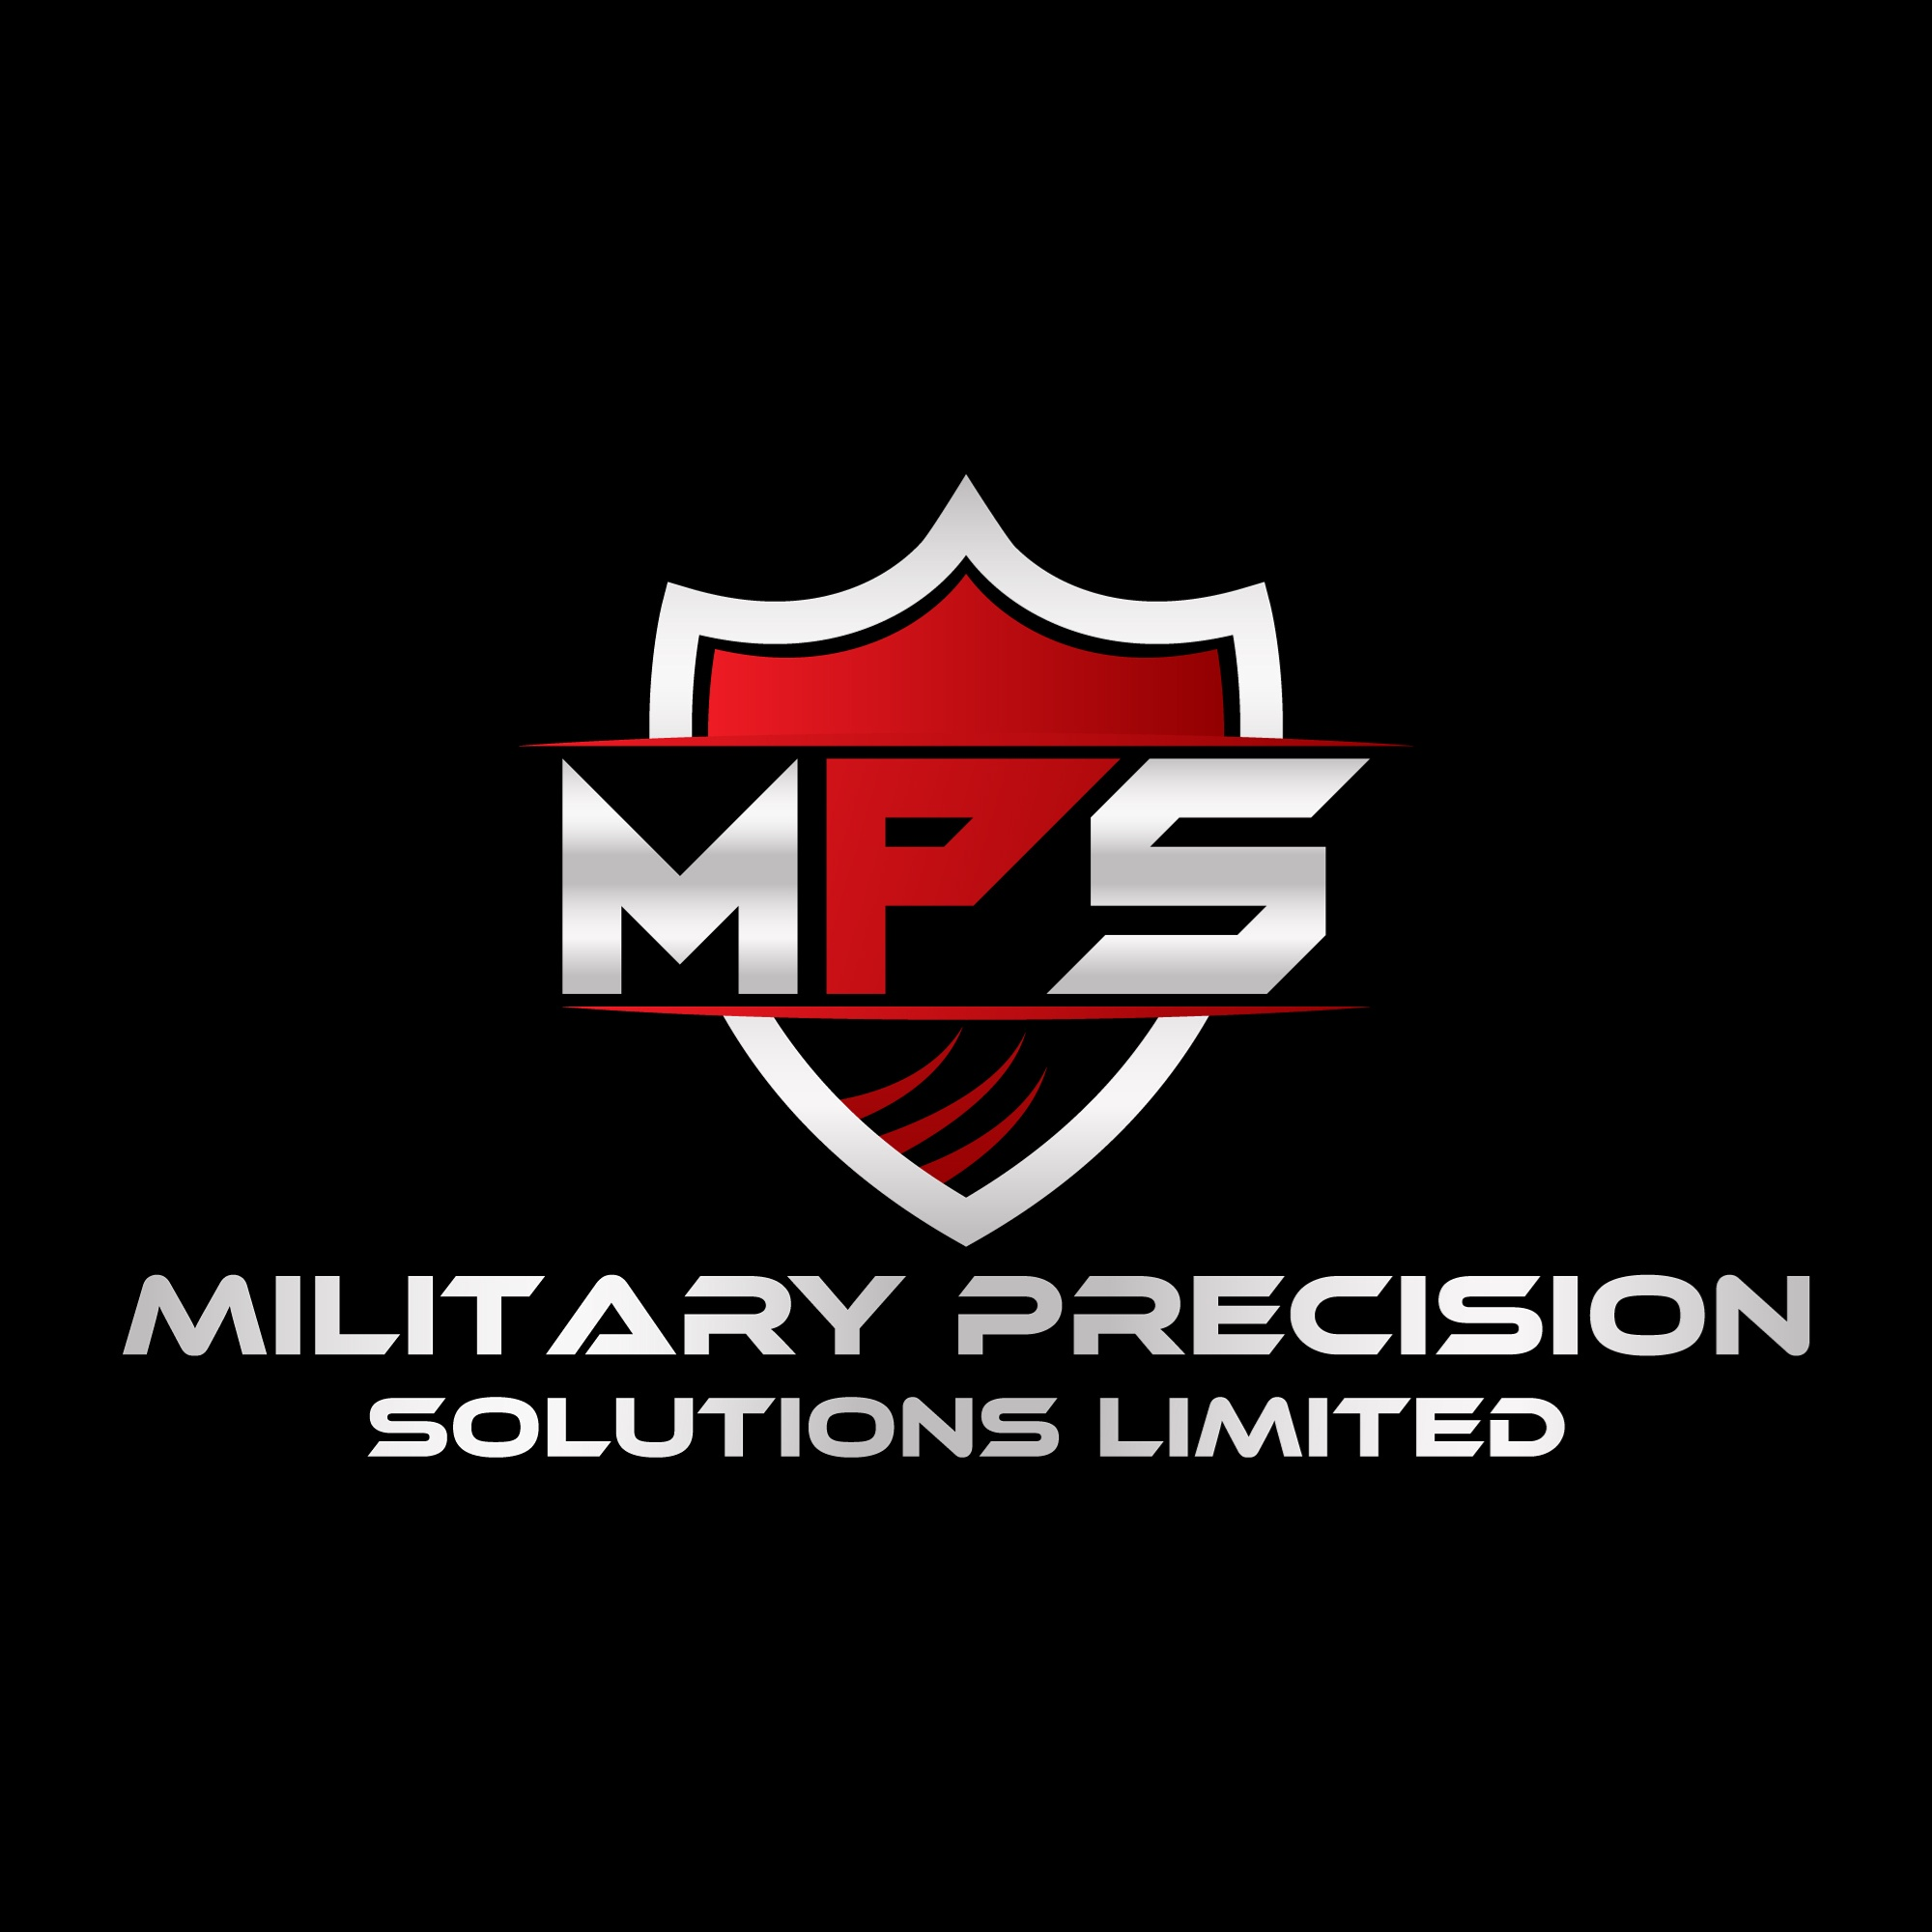 MPS (Military precision solutions)